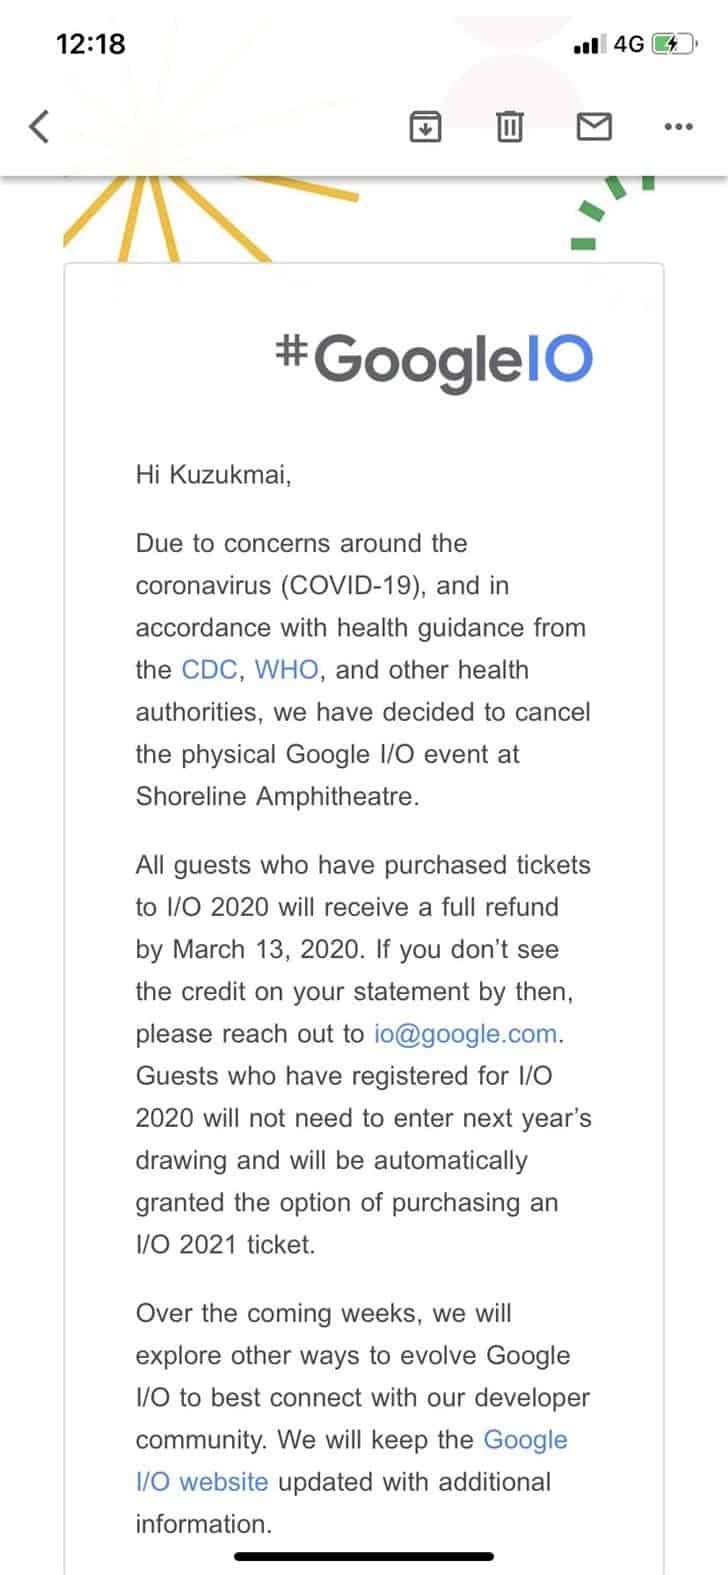 Google I / O 2020 conference cancelled